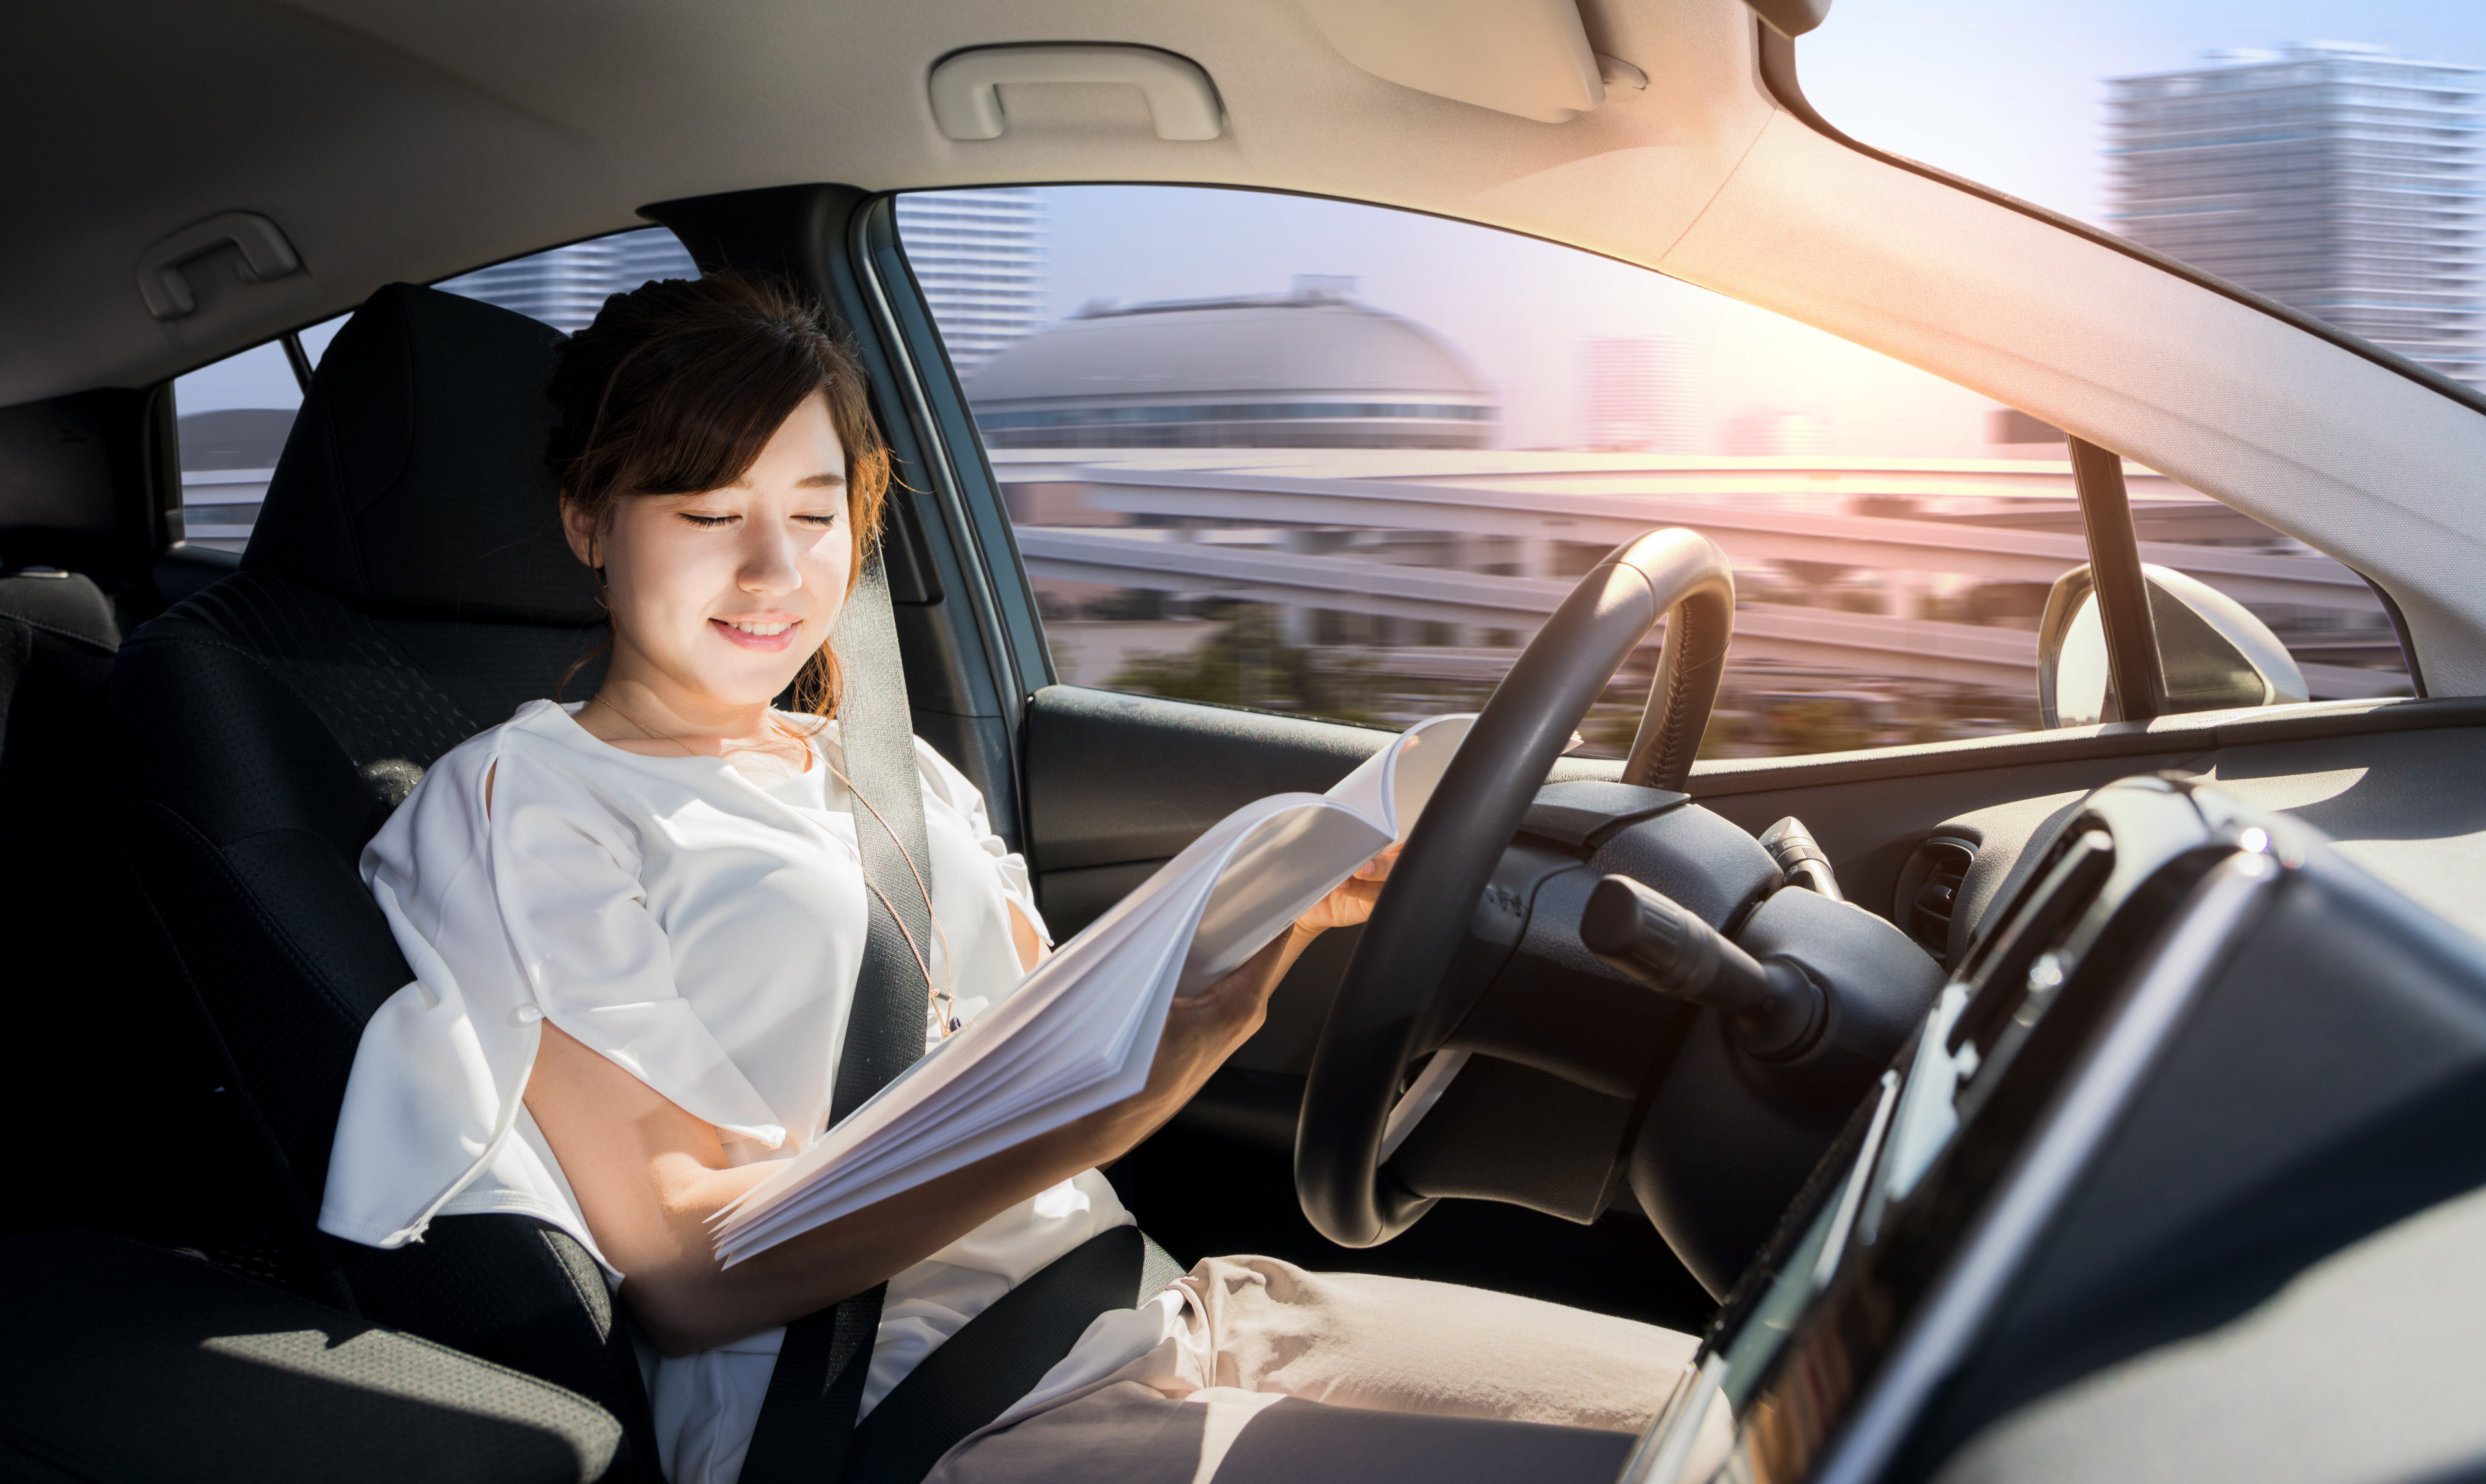 Woman reading in self-driving vehicle